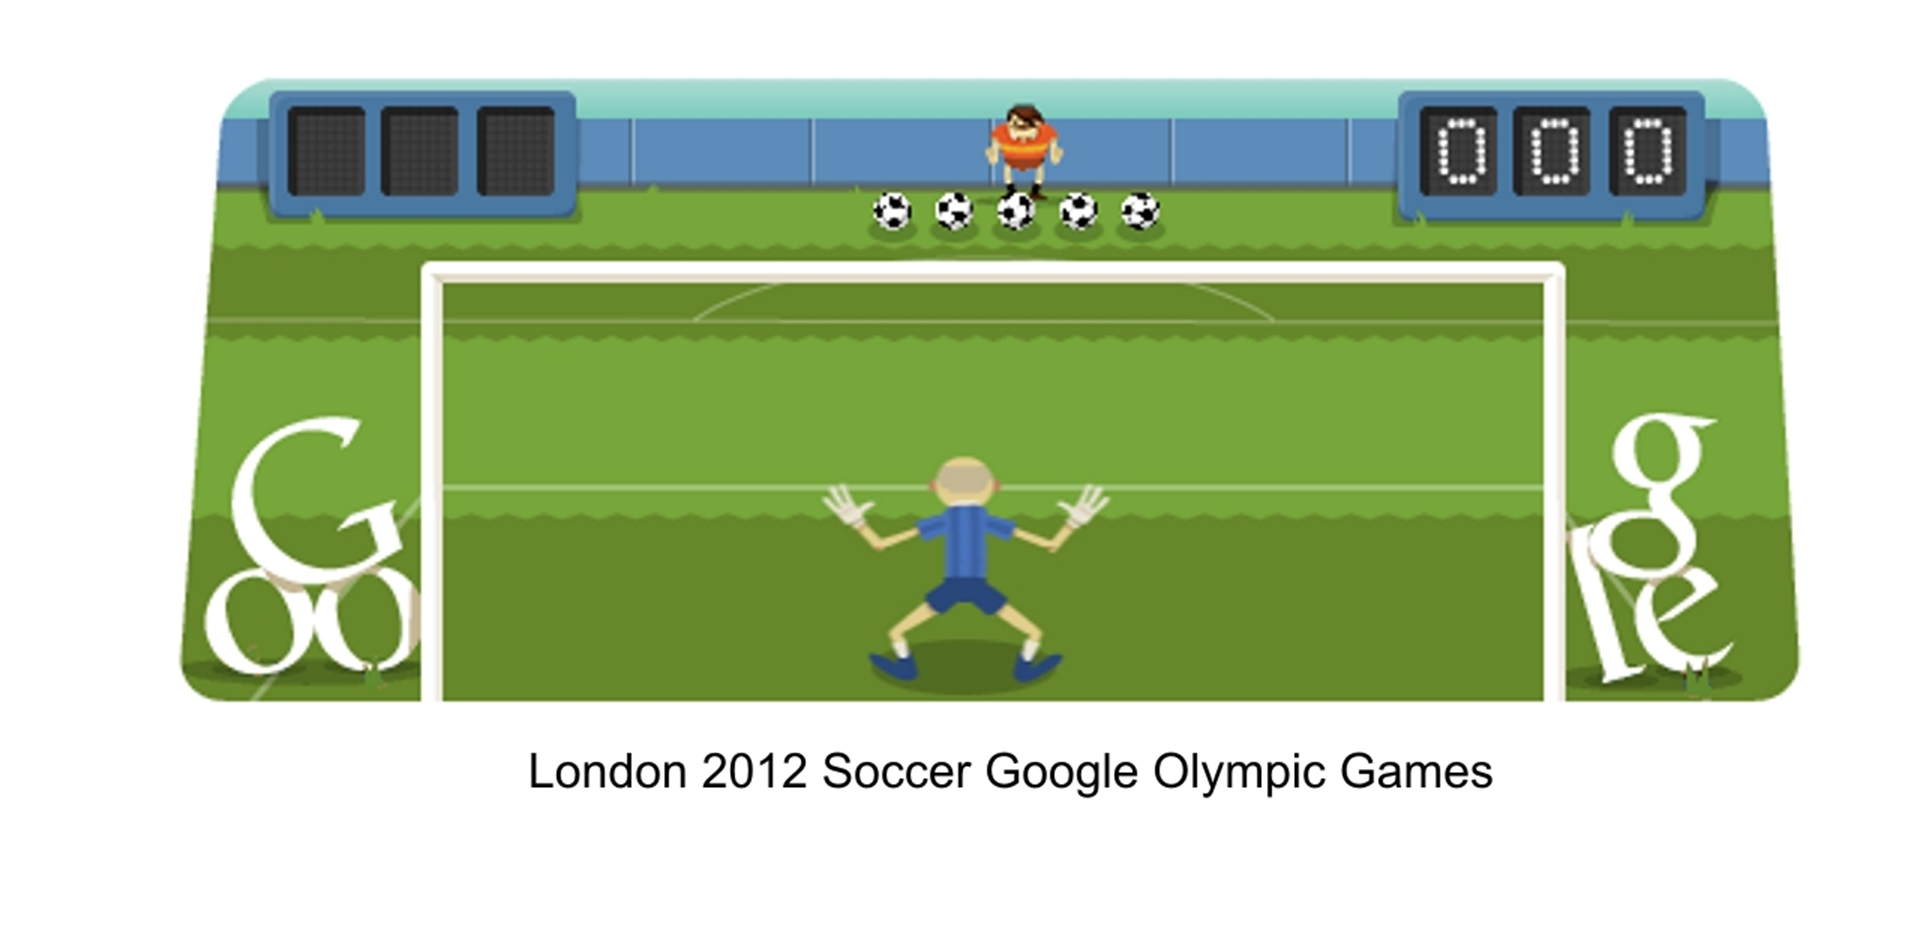 London 2012 Football Soccer